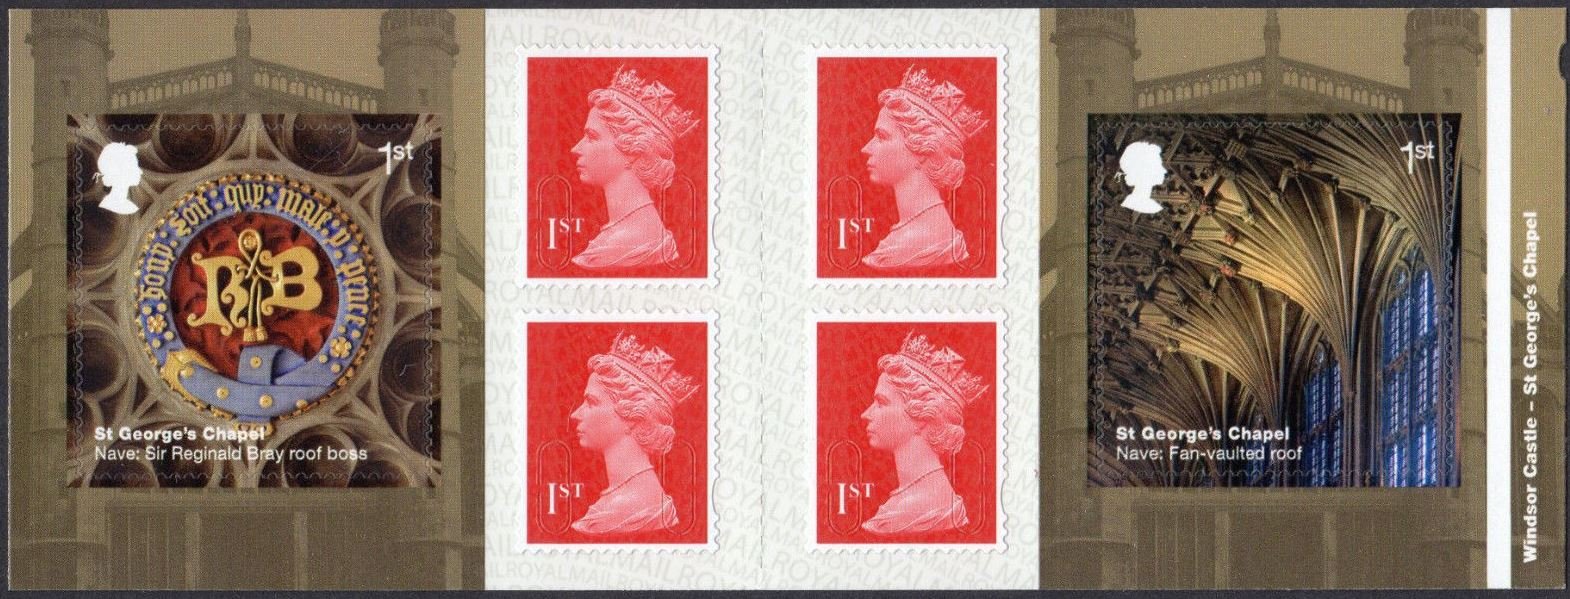 "2017 GB - PM55 Windsor (W) Mixed Bklt of 6 ""MCIL/M17L"" Plain"